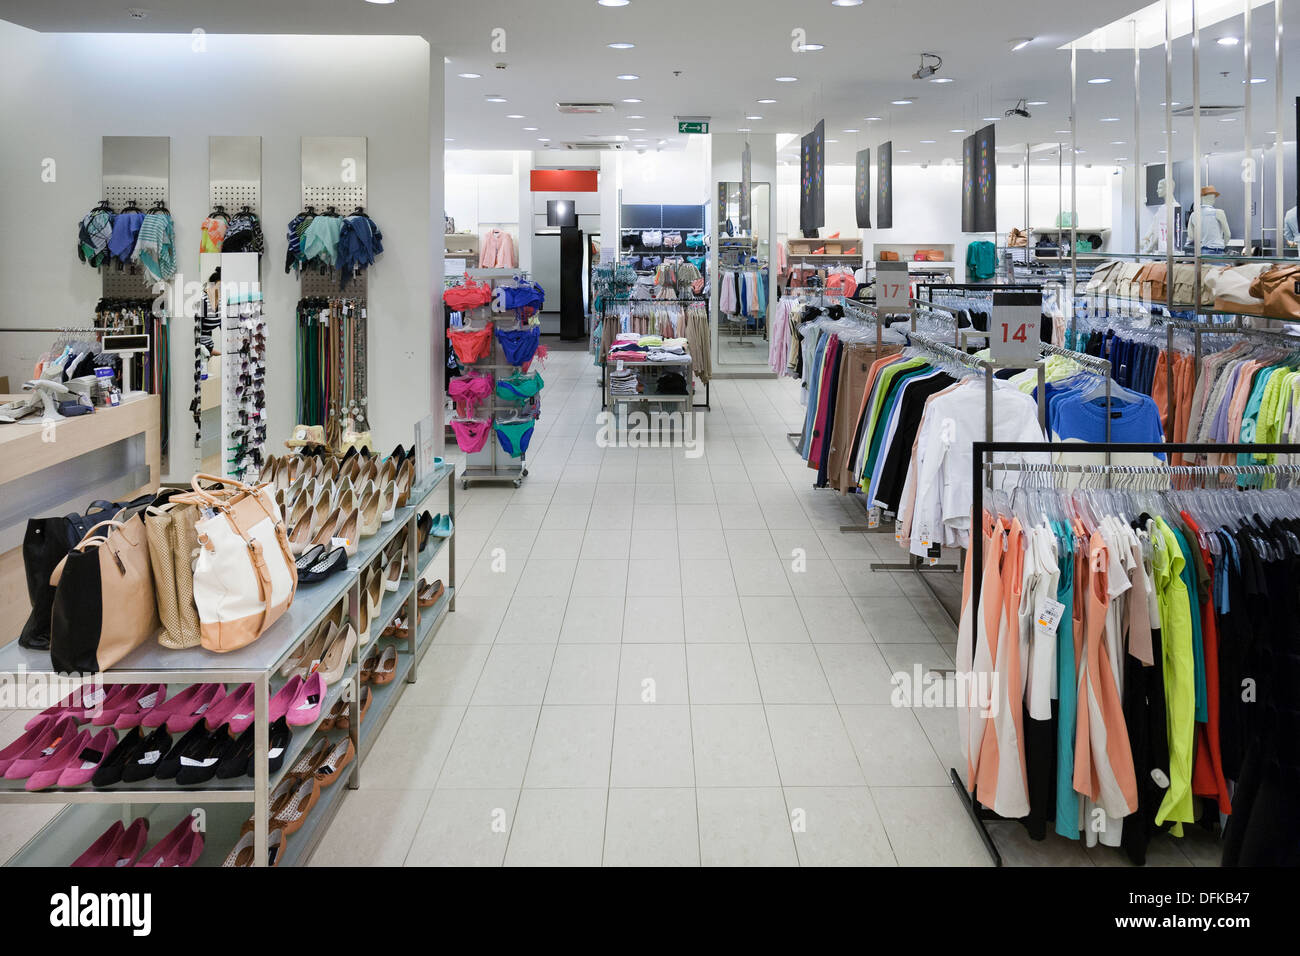 f62be98a9b Fashion shop interior with display. Clothing and bags in retail store.  Large aisle and elevated view